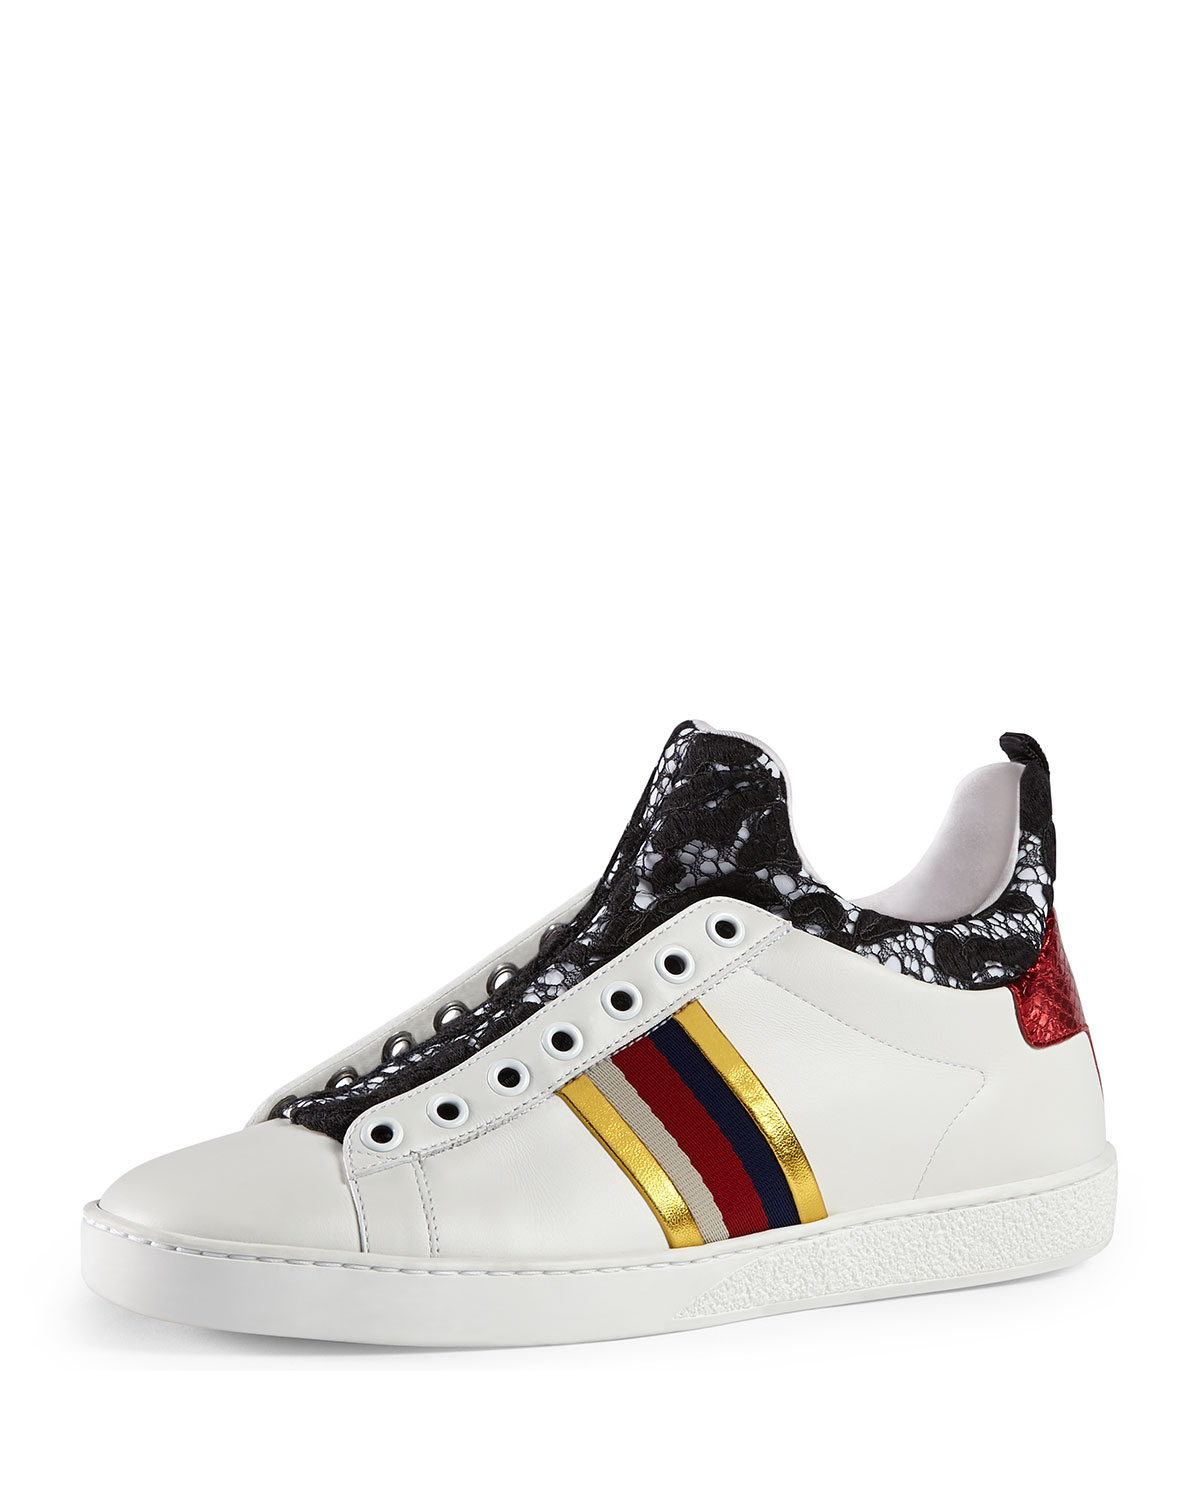 8879378db47 Gucci New Ace High Top Lace Sneaker